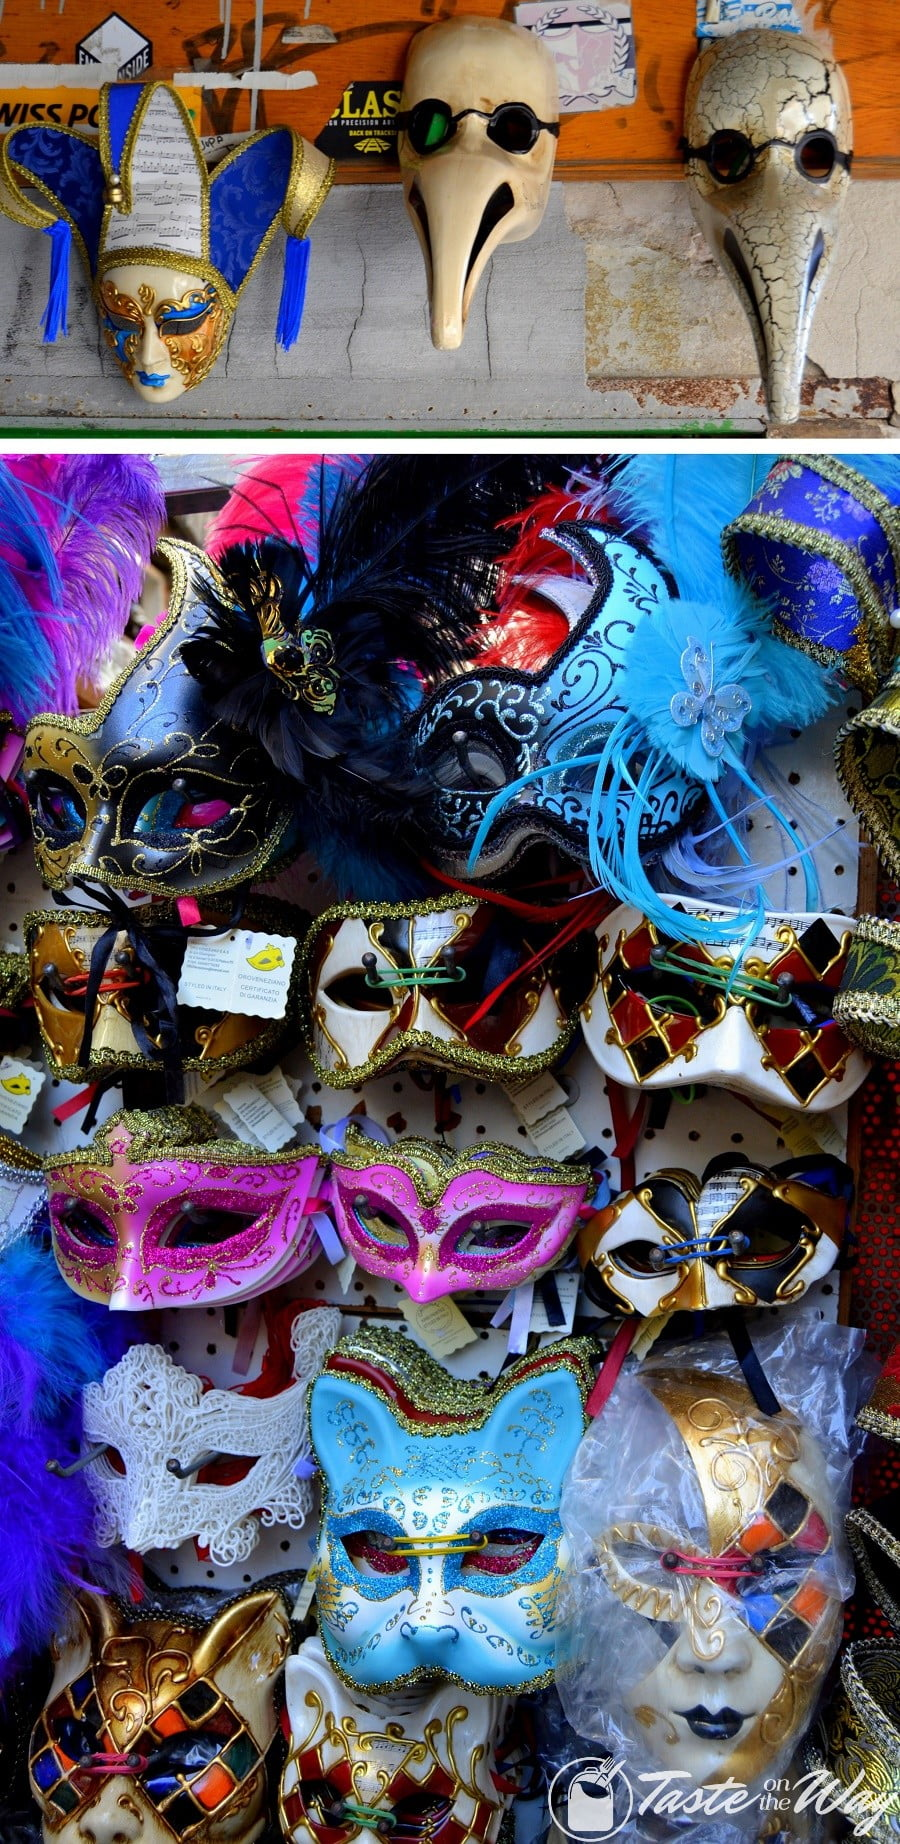 Check out these awesome pictures of mask shops in #Venice #travel #photography @tasteontheway